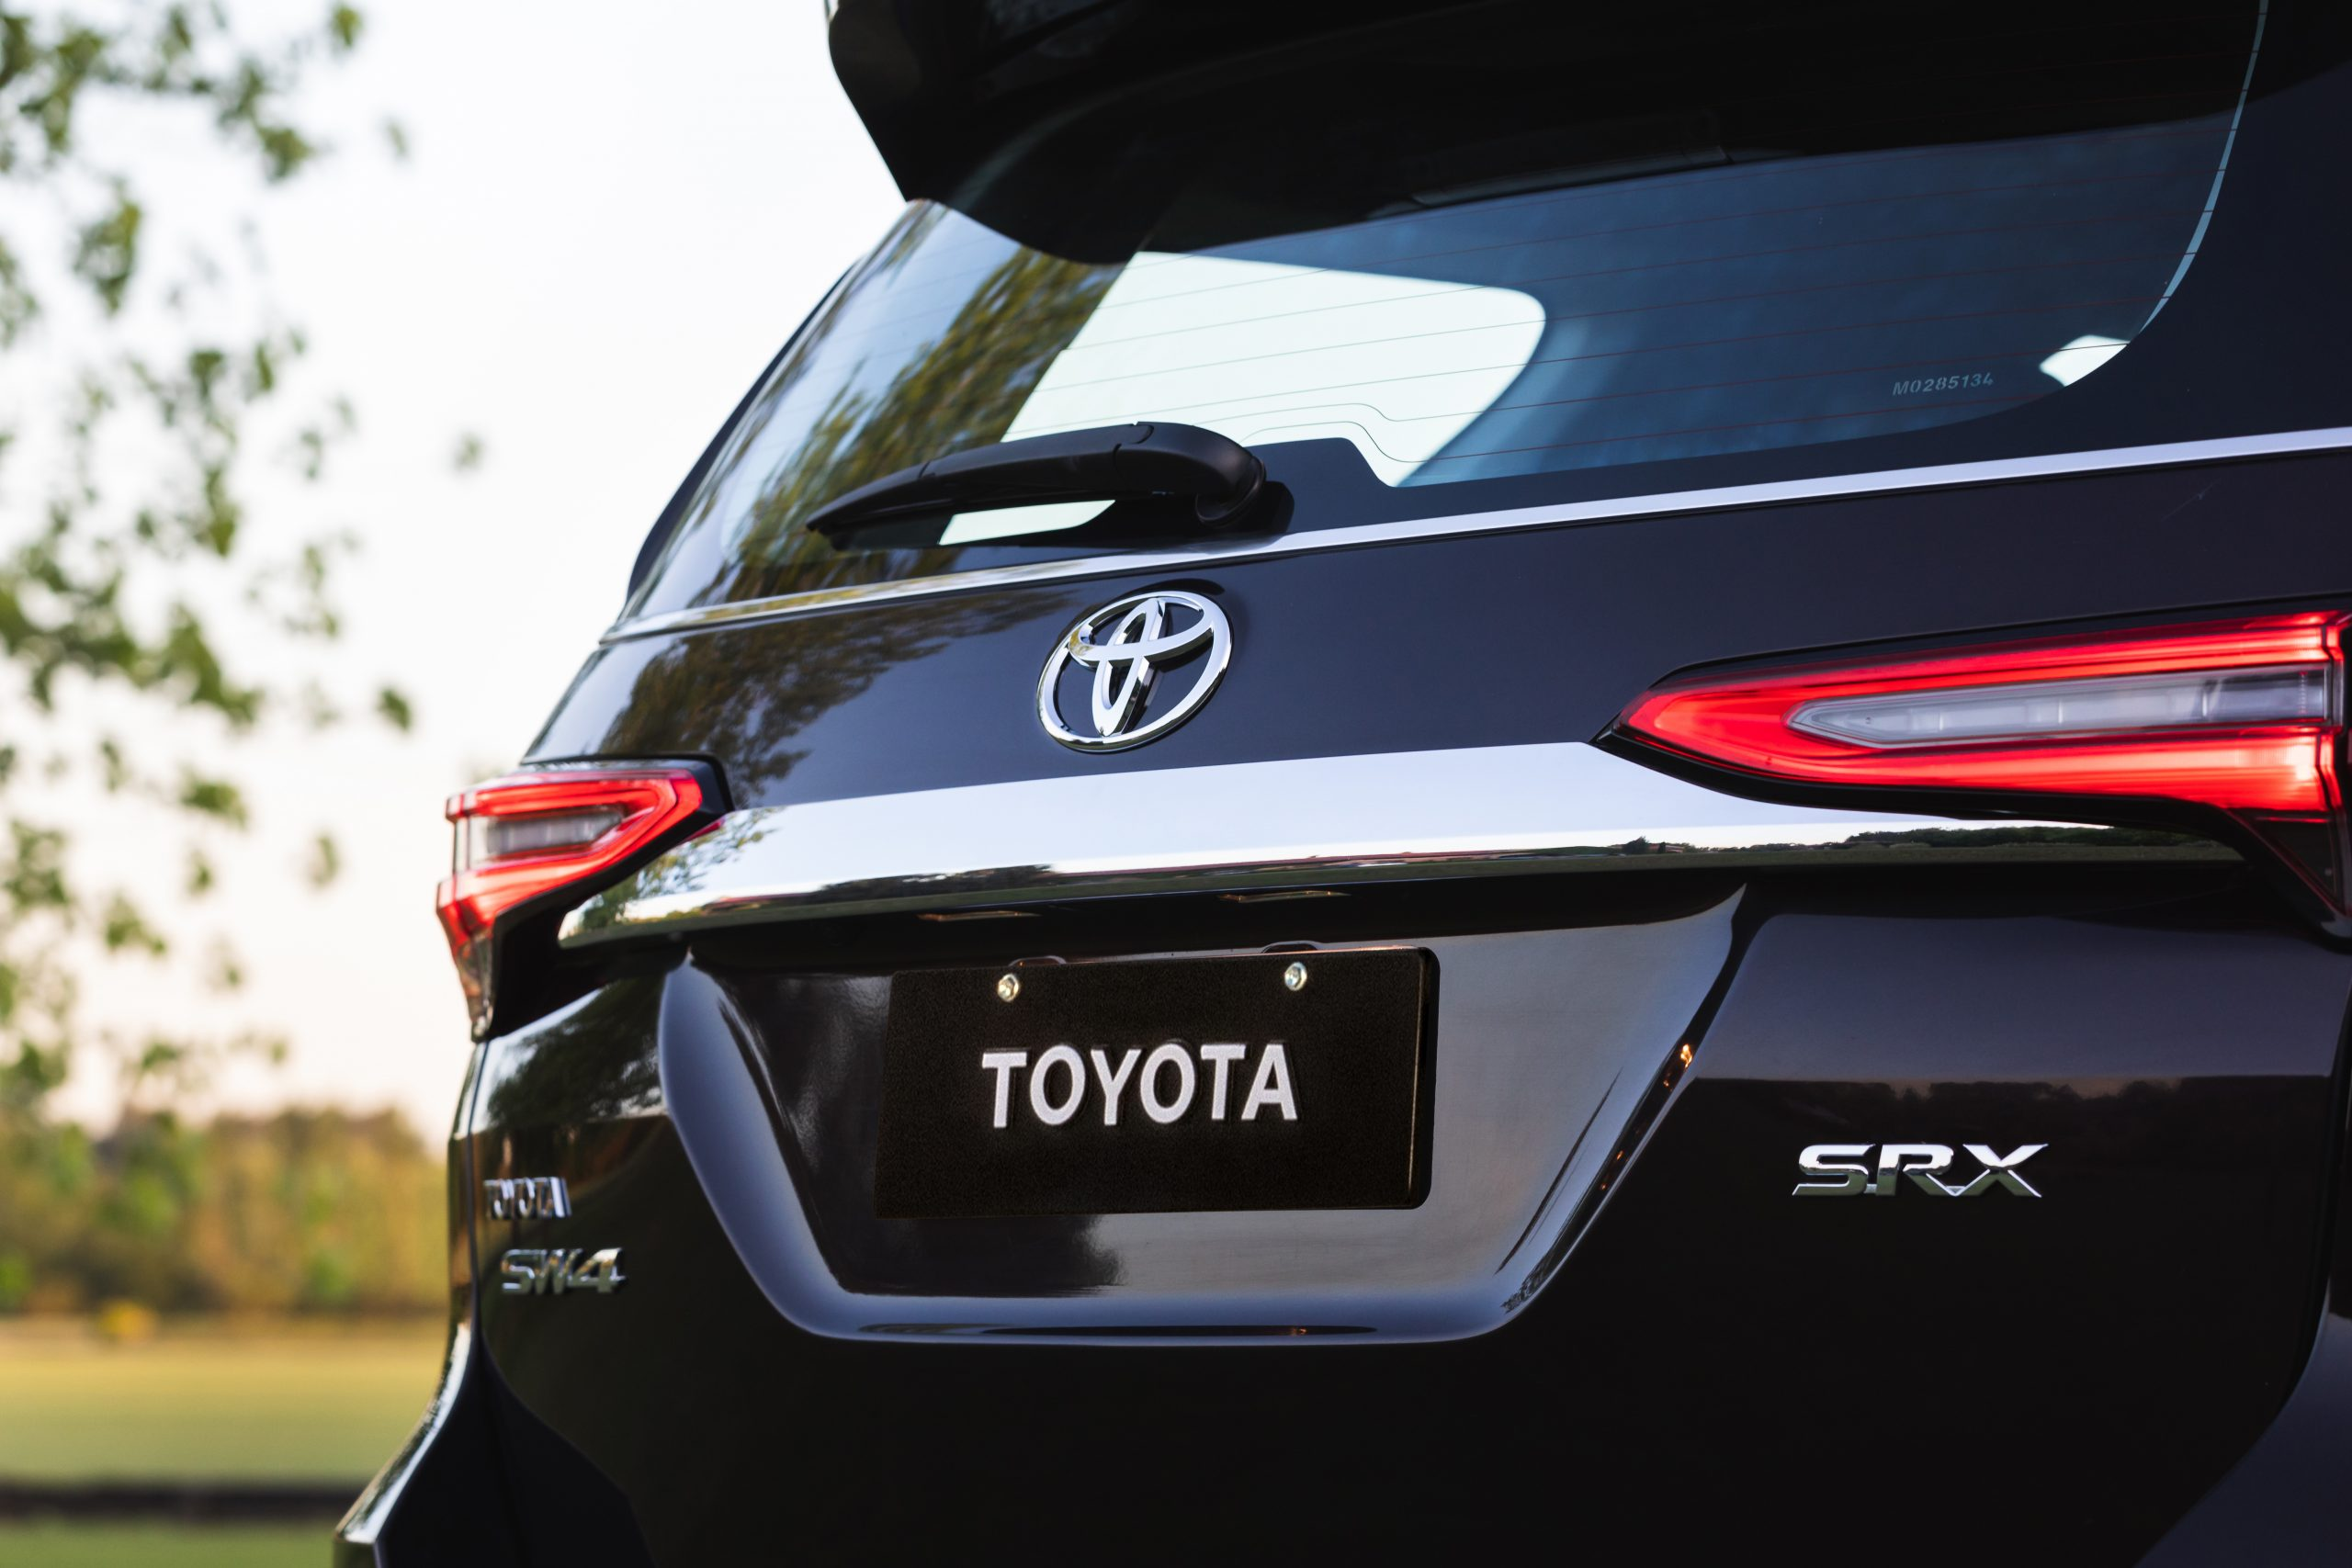 https://www.toyotacomunica.com.br/wp-content/uploads/2020/11/20_SW4_2021-scaled.jpg